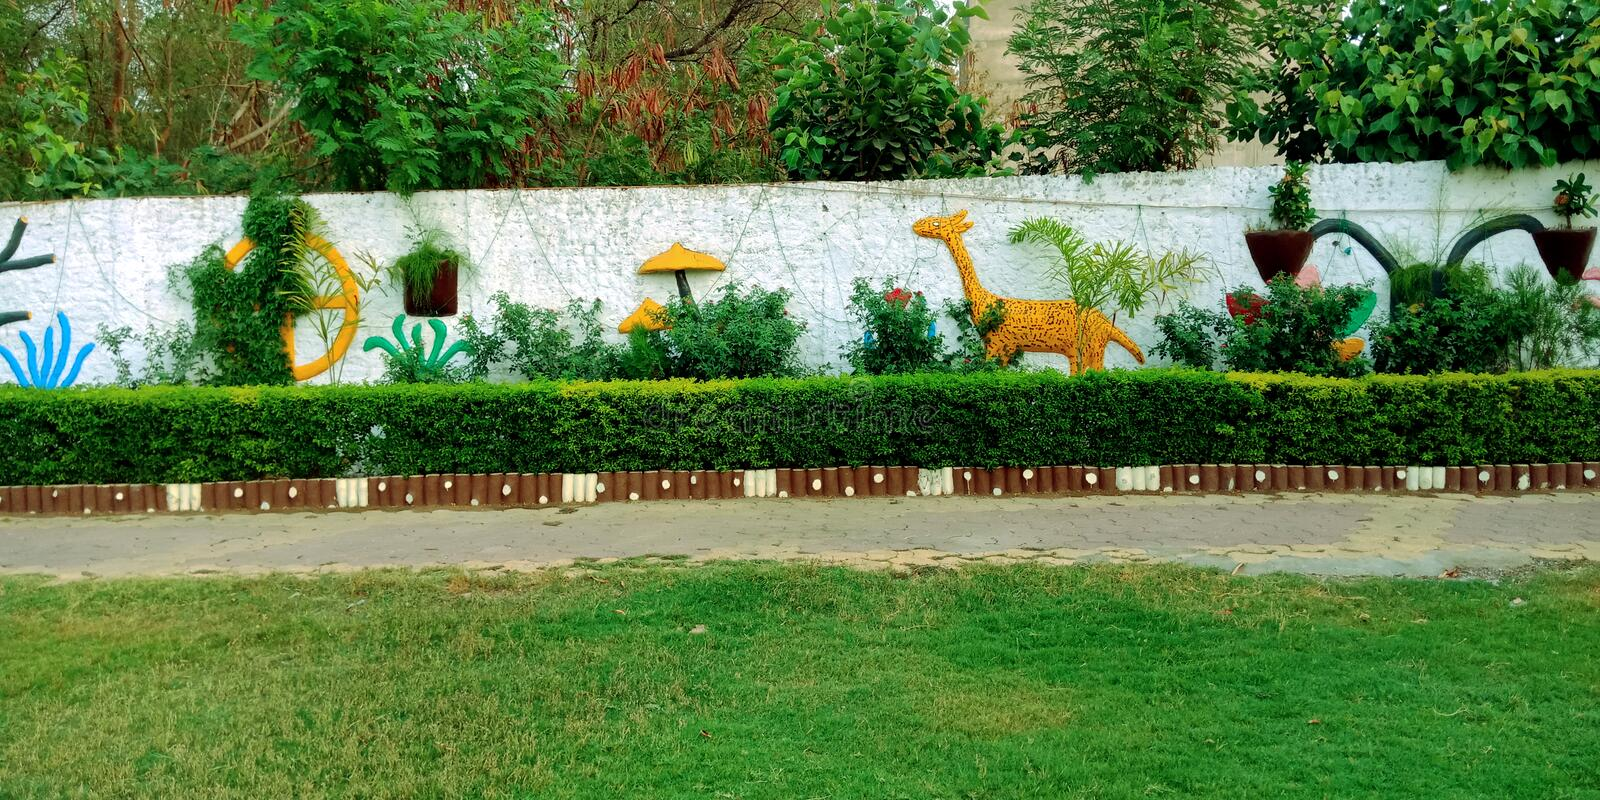 Garden wall decorations with animals art stock photo stock image